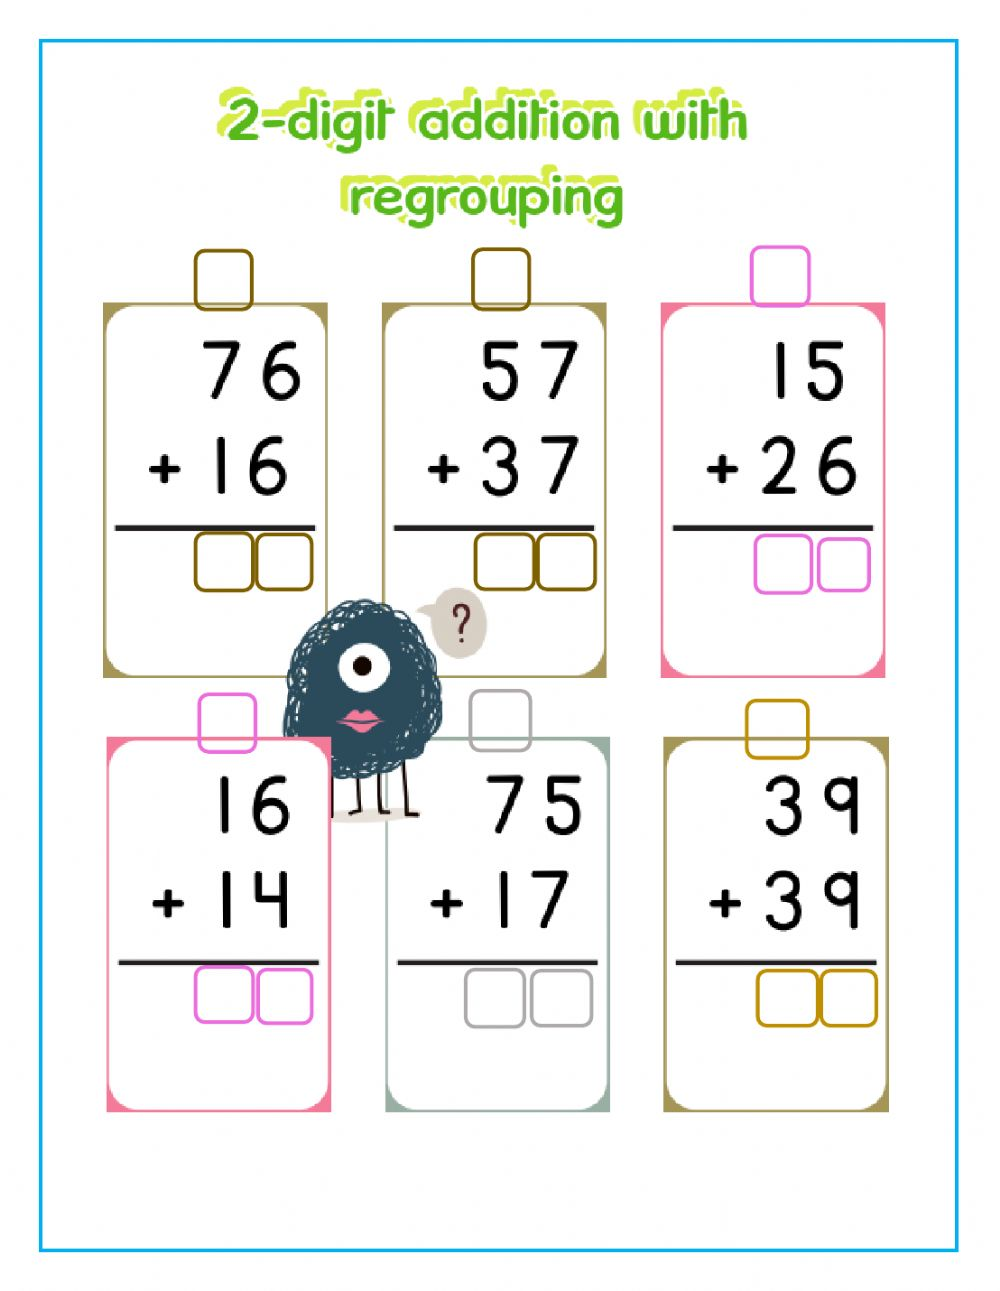 medium resolution of 2-digit addition with regrouping worksheet